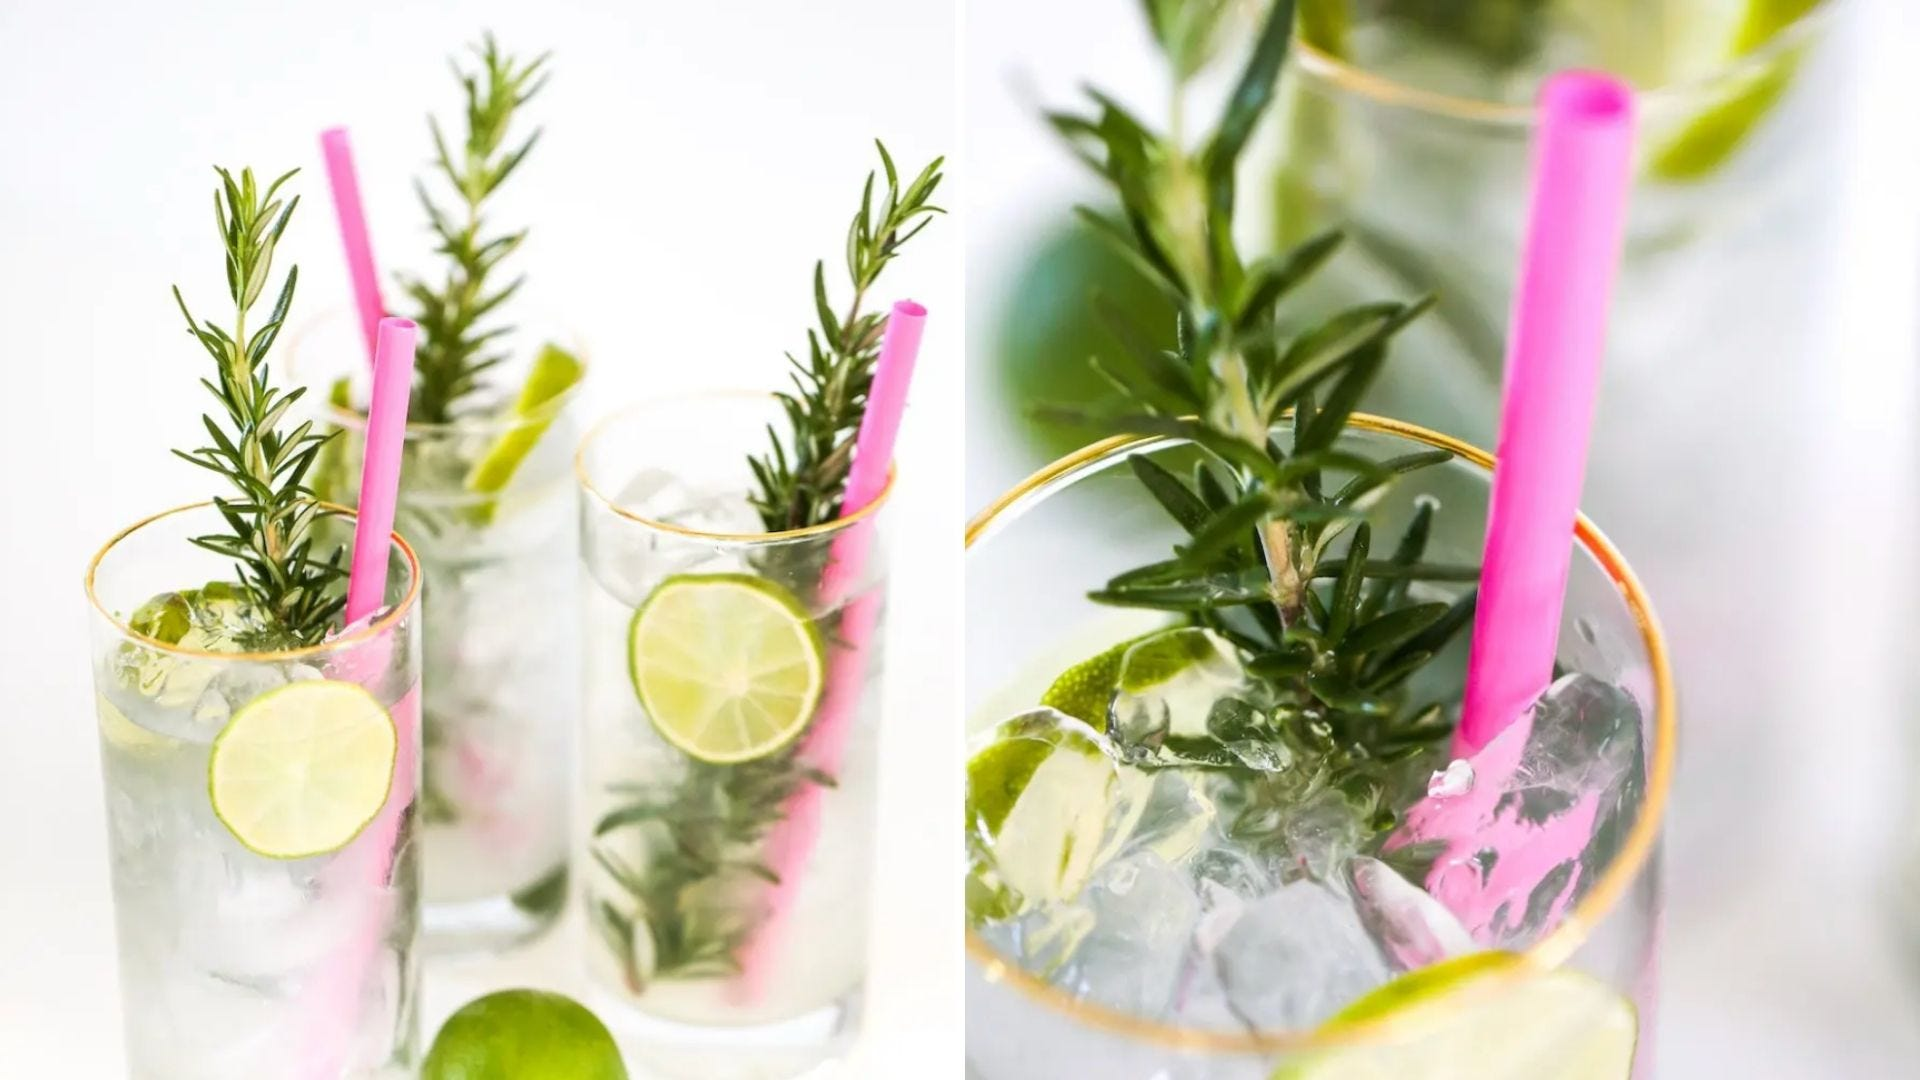 Tall glasses with limeade, lime slices, and rosemary inside